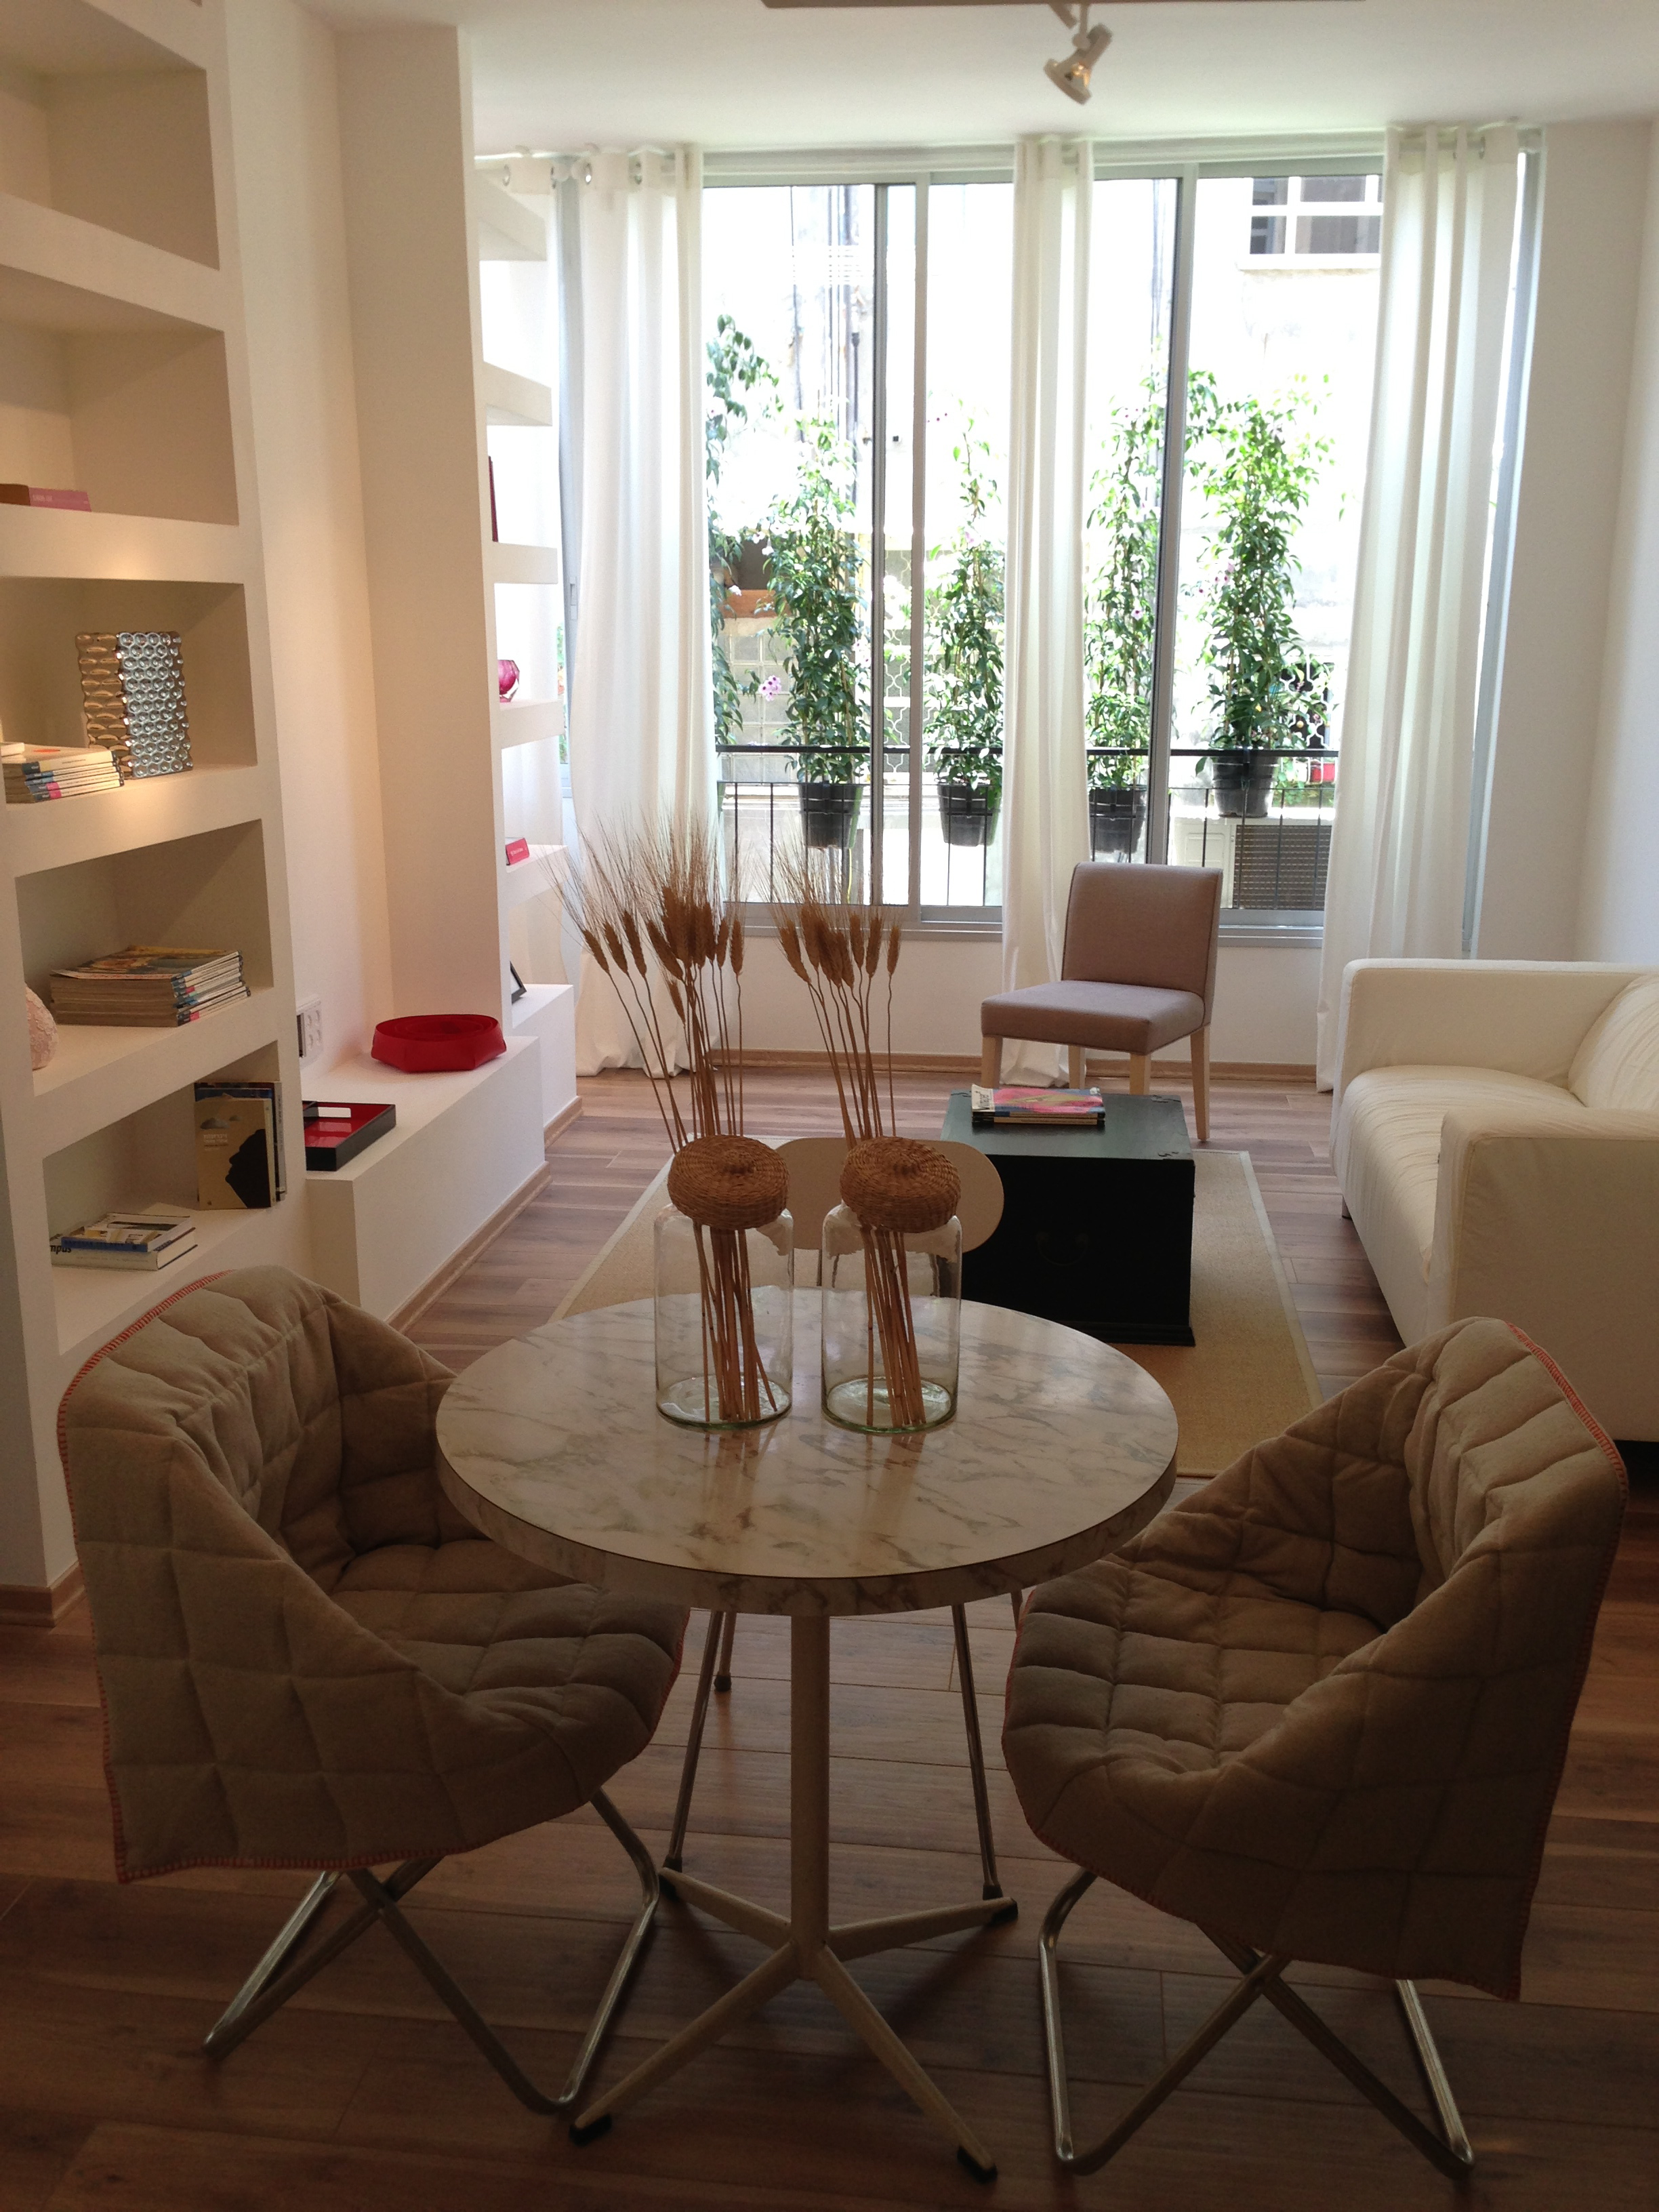 Beautifully Renovated 1BR Apartment for Sale in Tel Aviv's Old North